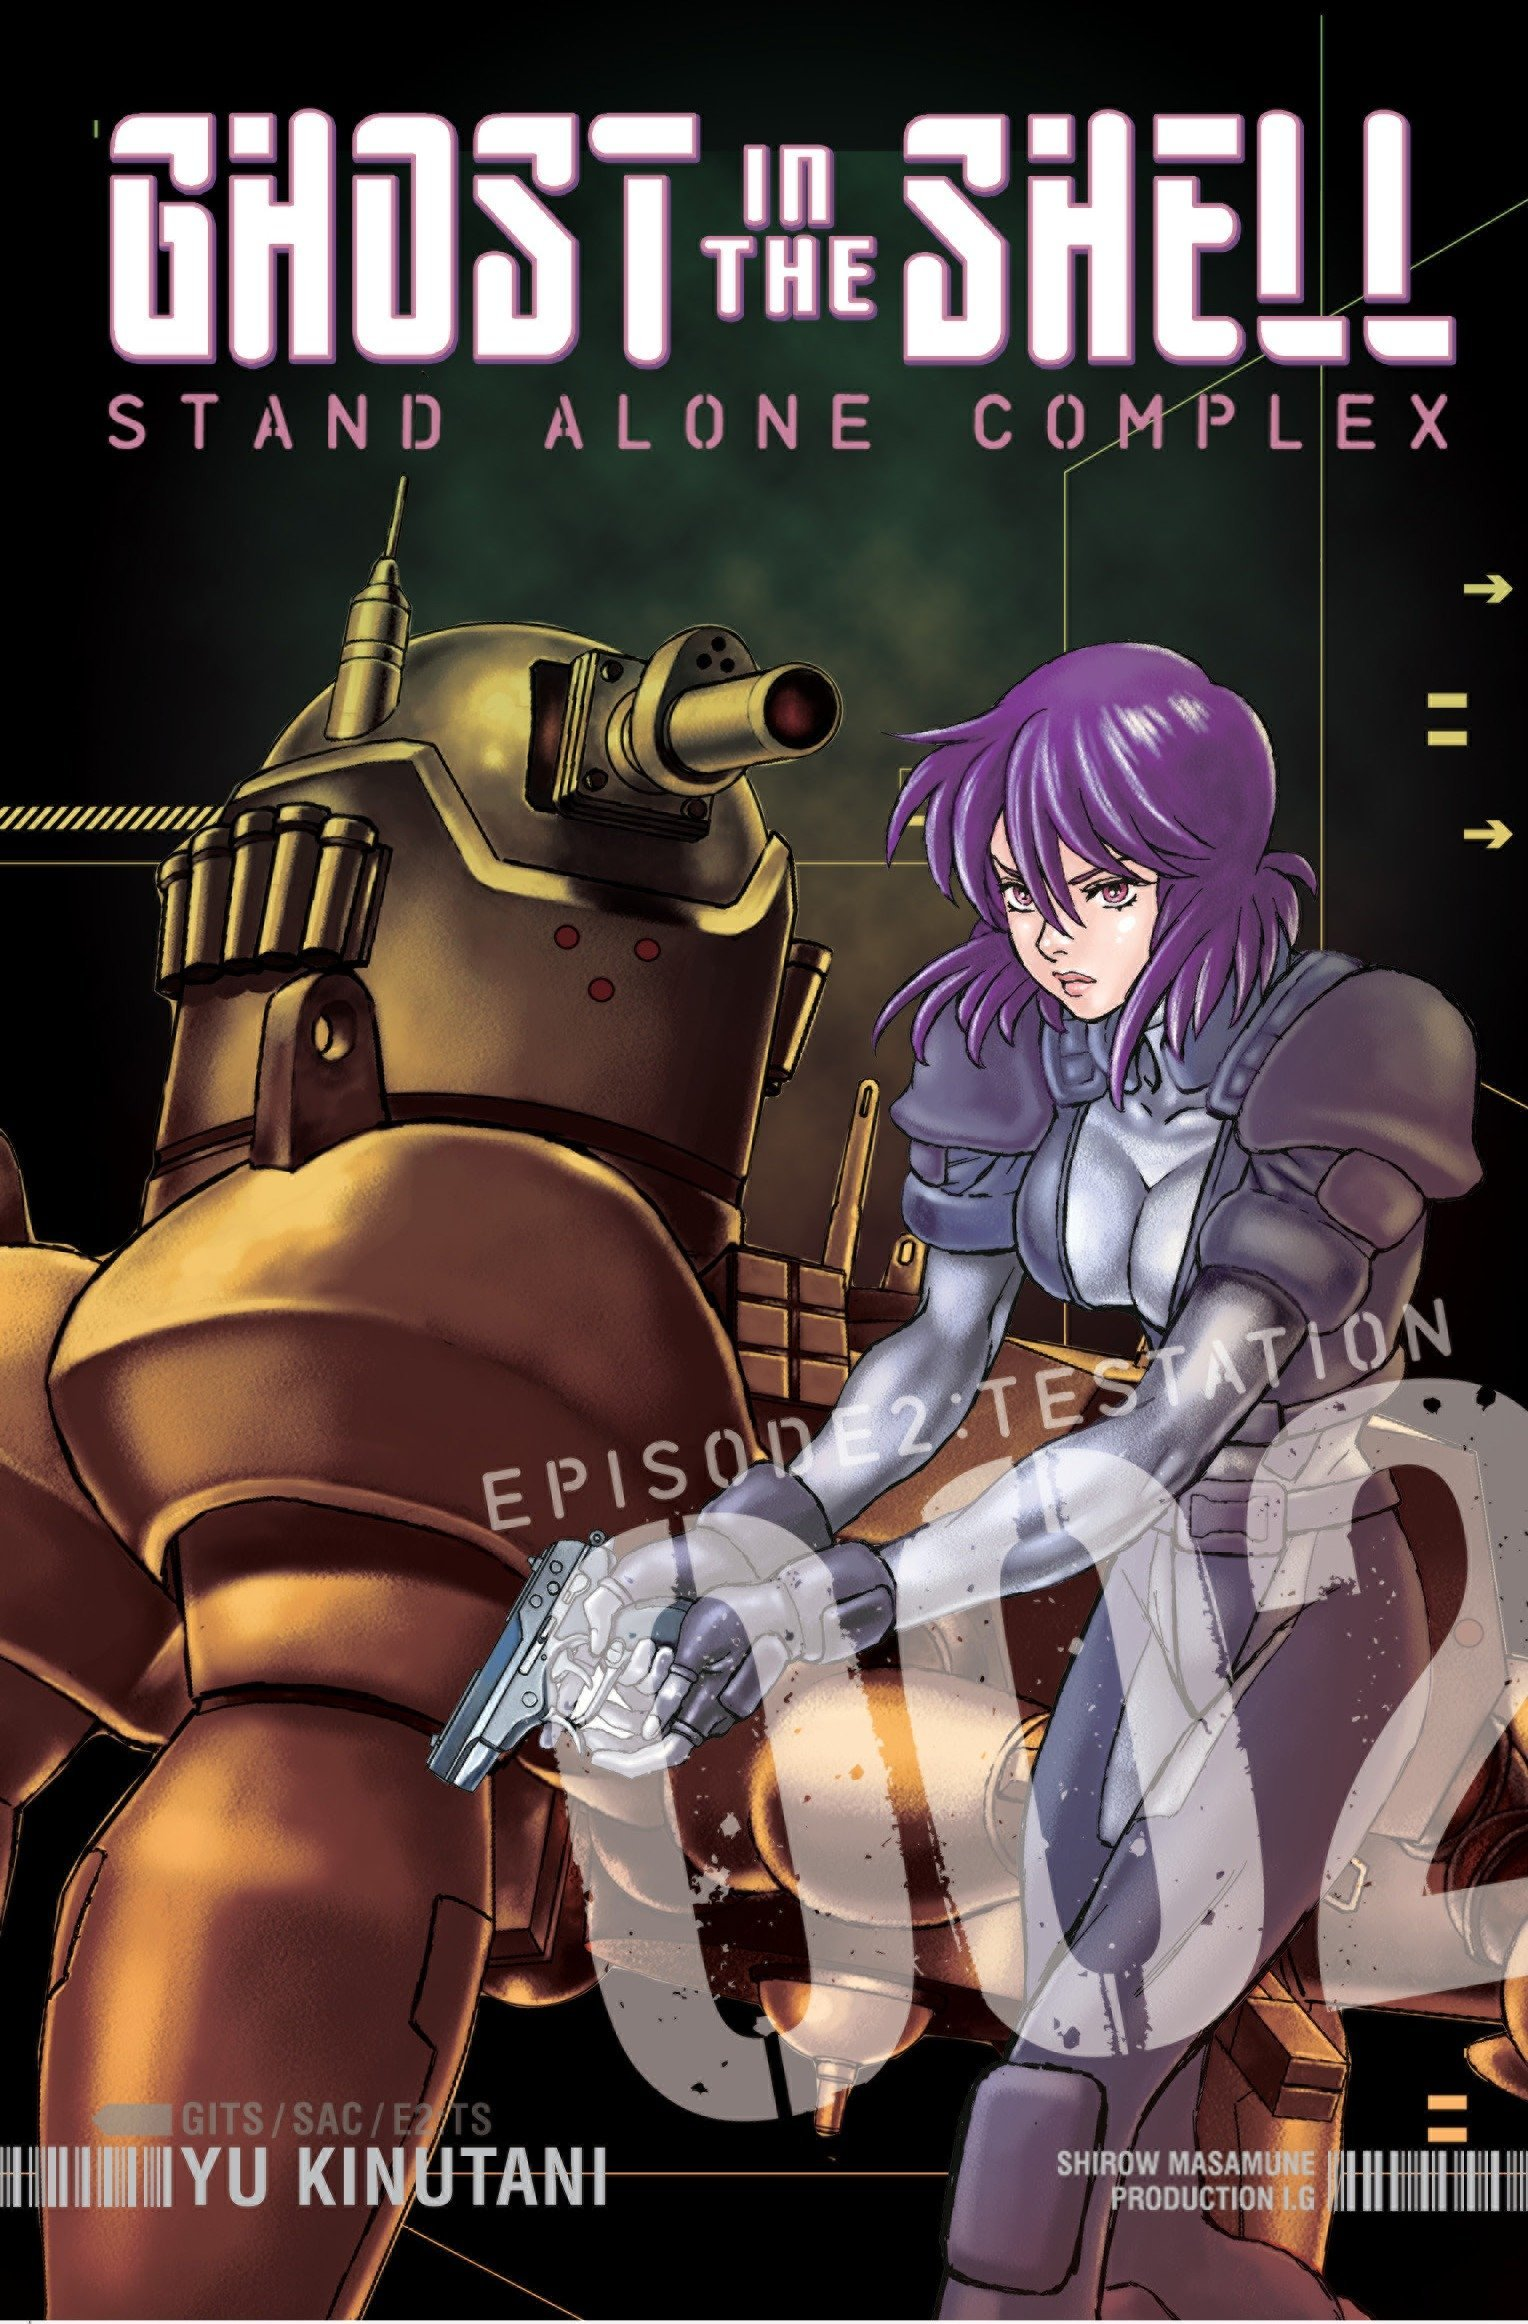 Amazon Com Ghost In The Shell Stand Alone Complex 2 Ghost In The Shell Sac 9781935429869 Kinutani Yu Books